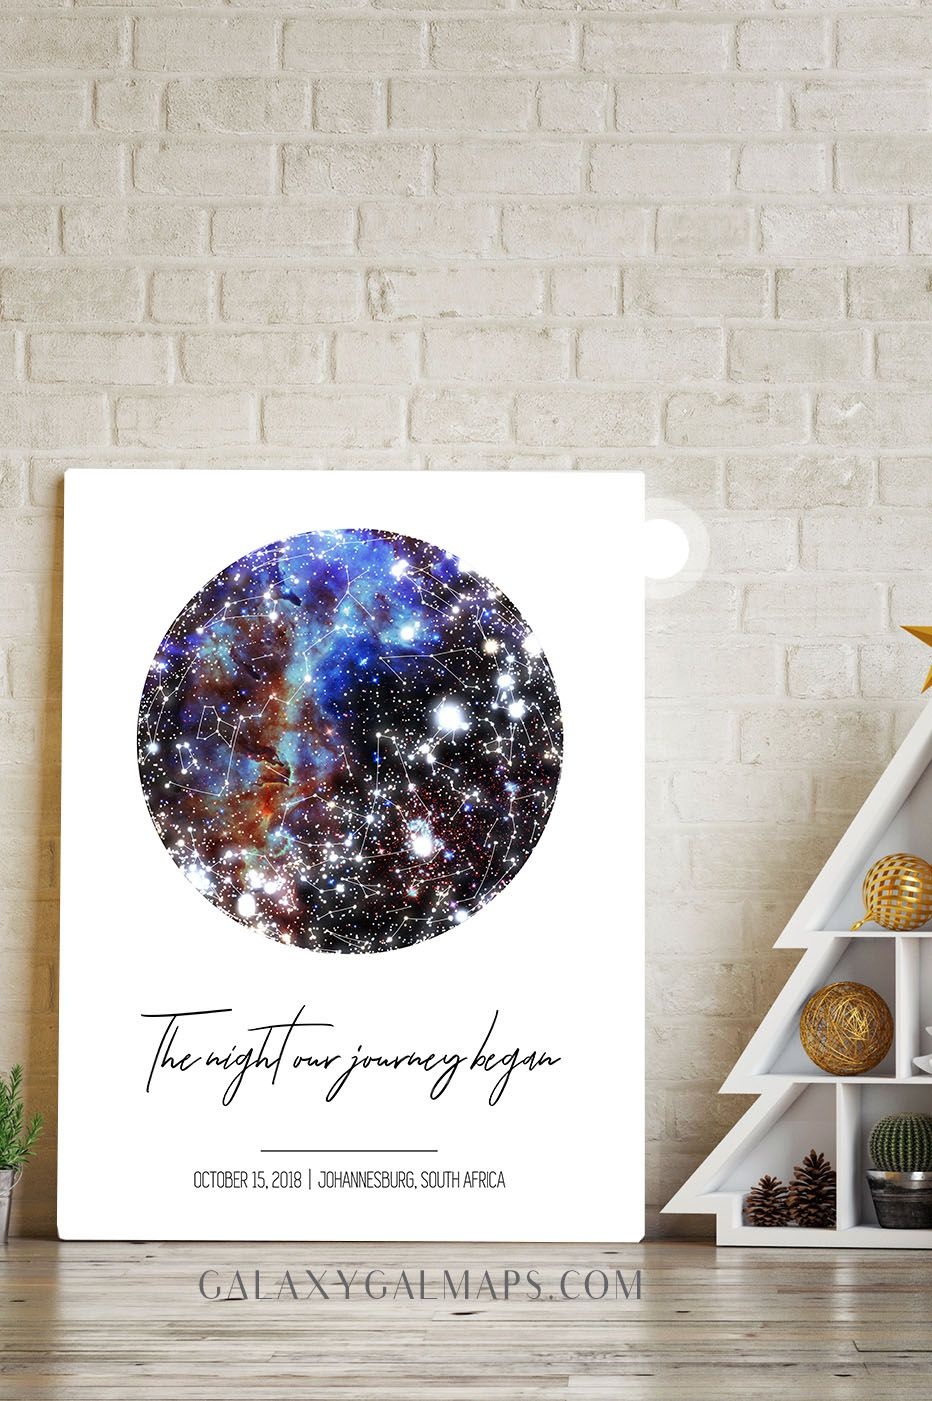 Your Custom Sky Map By Date And Place Best Friend Husband Christmas Gift Birthday Gifts For Grandma Christmas Gifts For Husband Boyfriend Anniversary Gifts